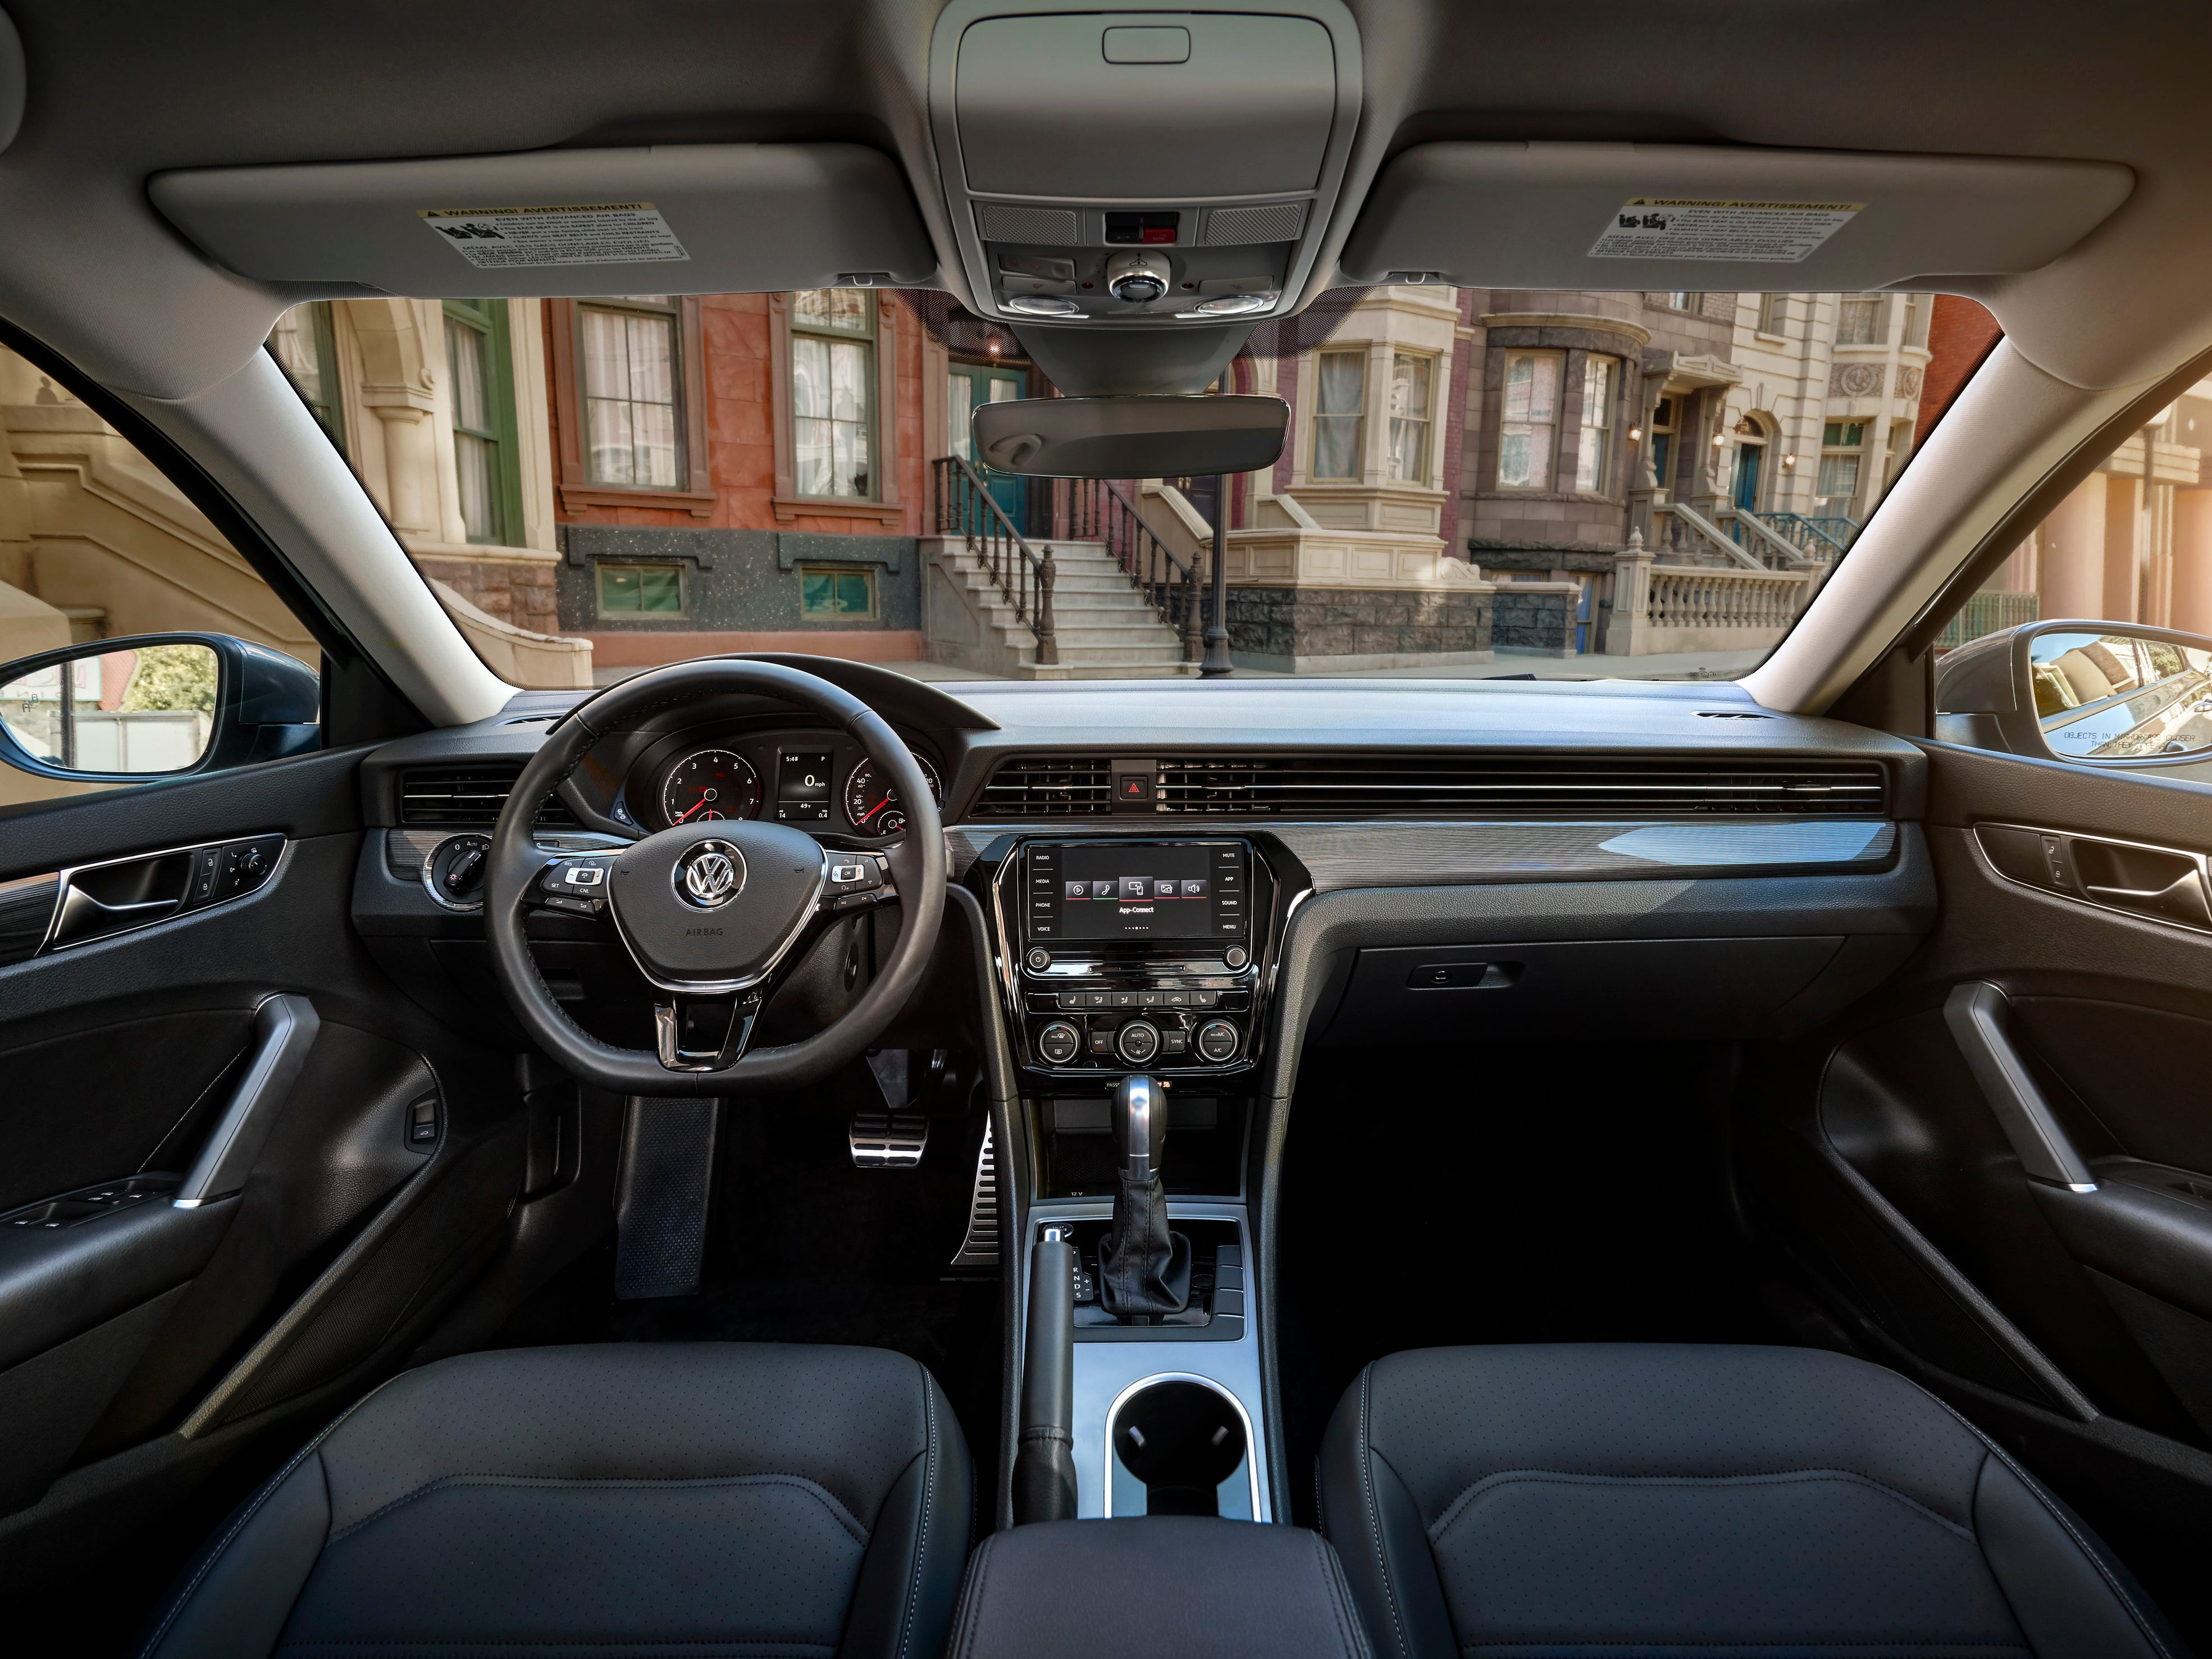 Three interior décor designs are available, based on trim. Volkswagen's V-Tex leatherette and Nappa leather seating surfaces are available in addition to the standard cloth seats.  Four color options are offered.